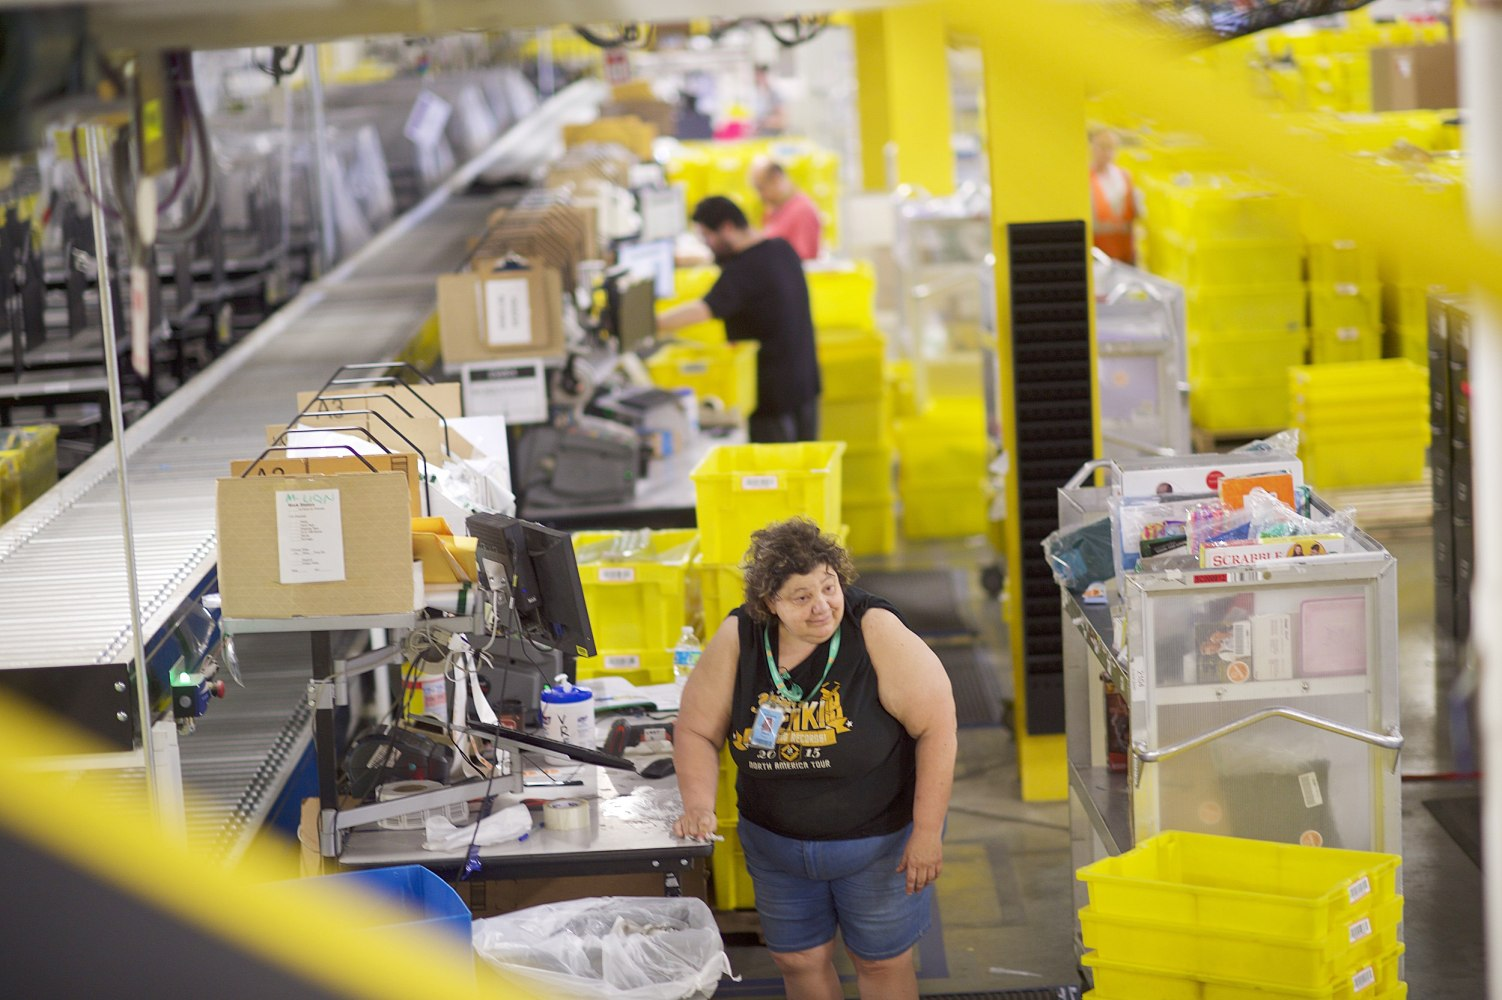 Image Amazon Hosts Jobs Day Across Us To Hire 50 000 For Its Fulfillment Centers